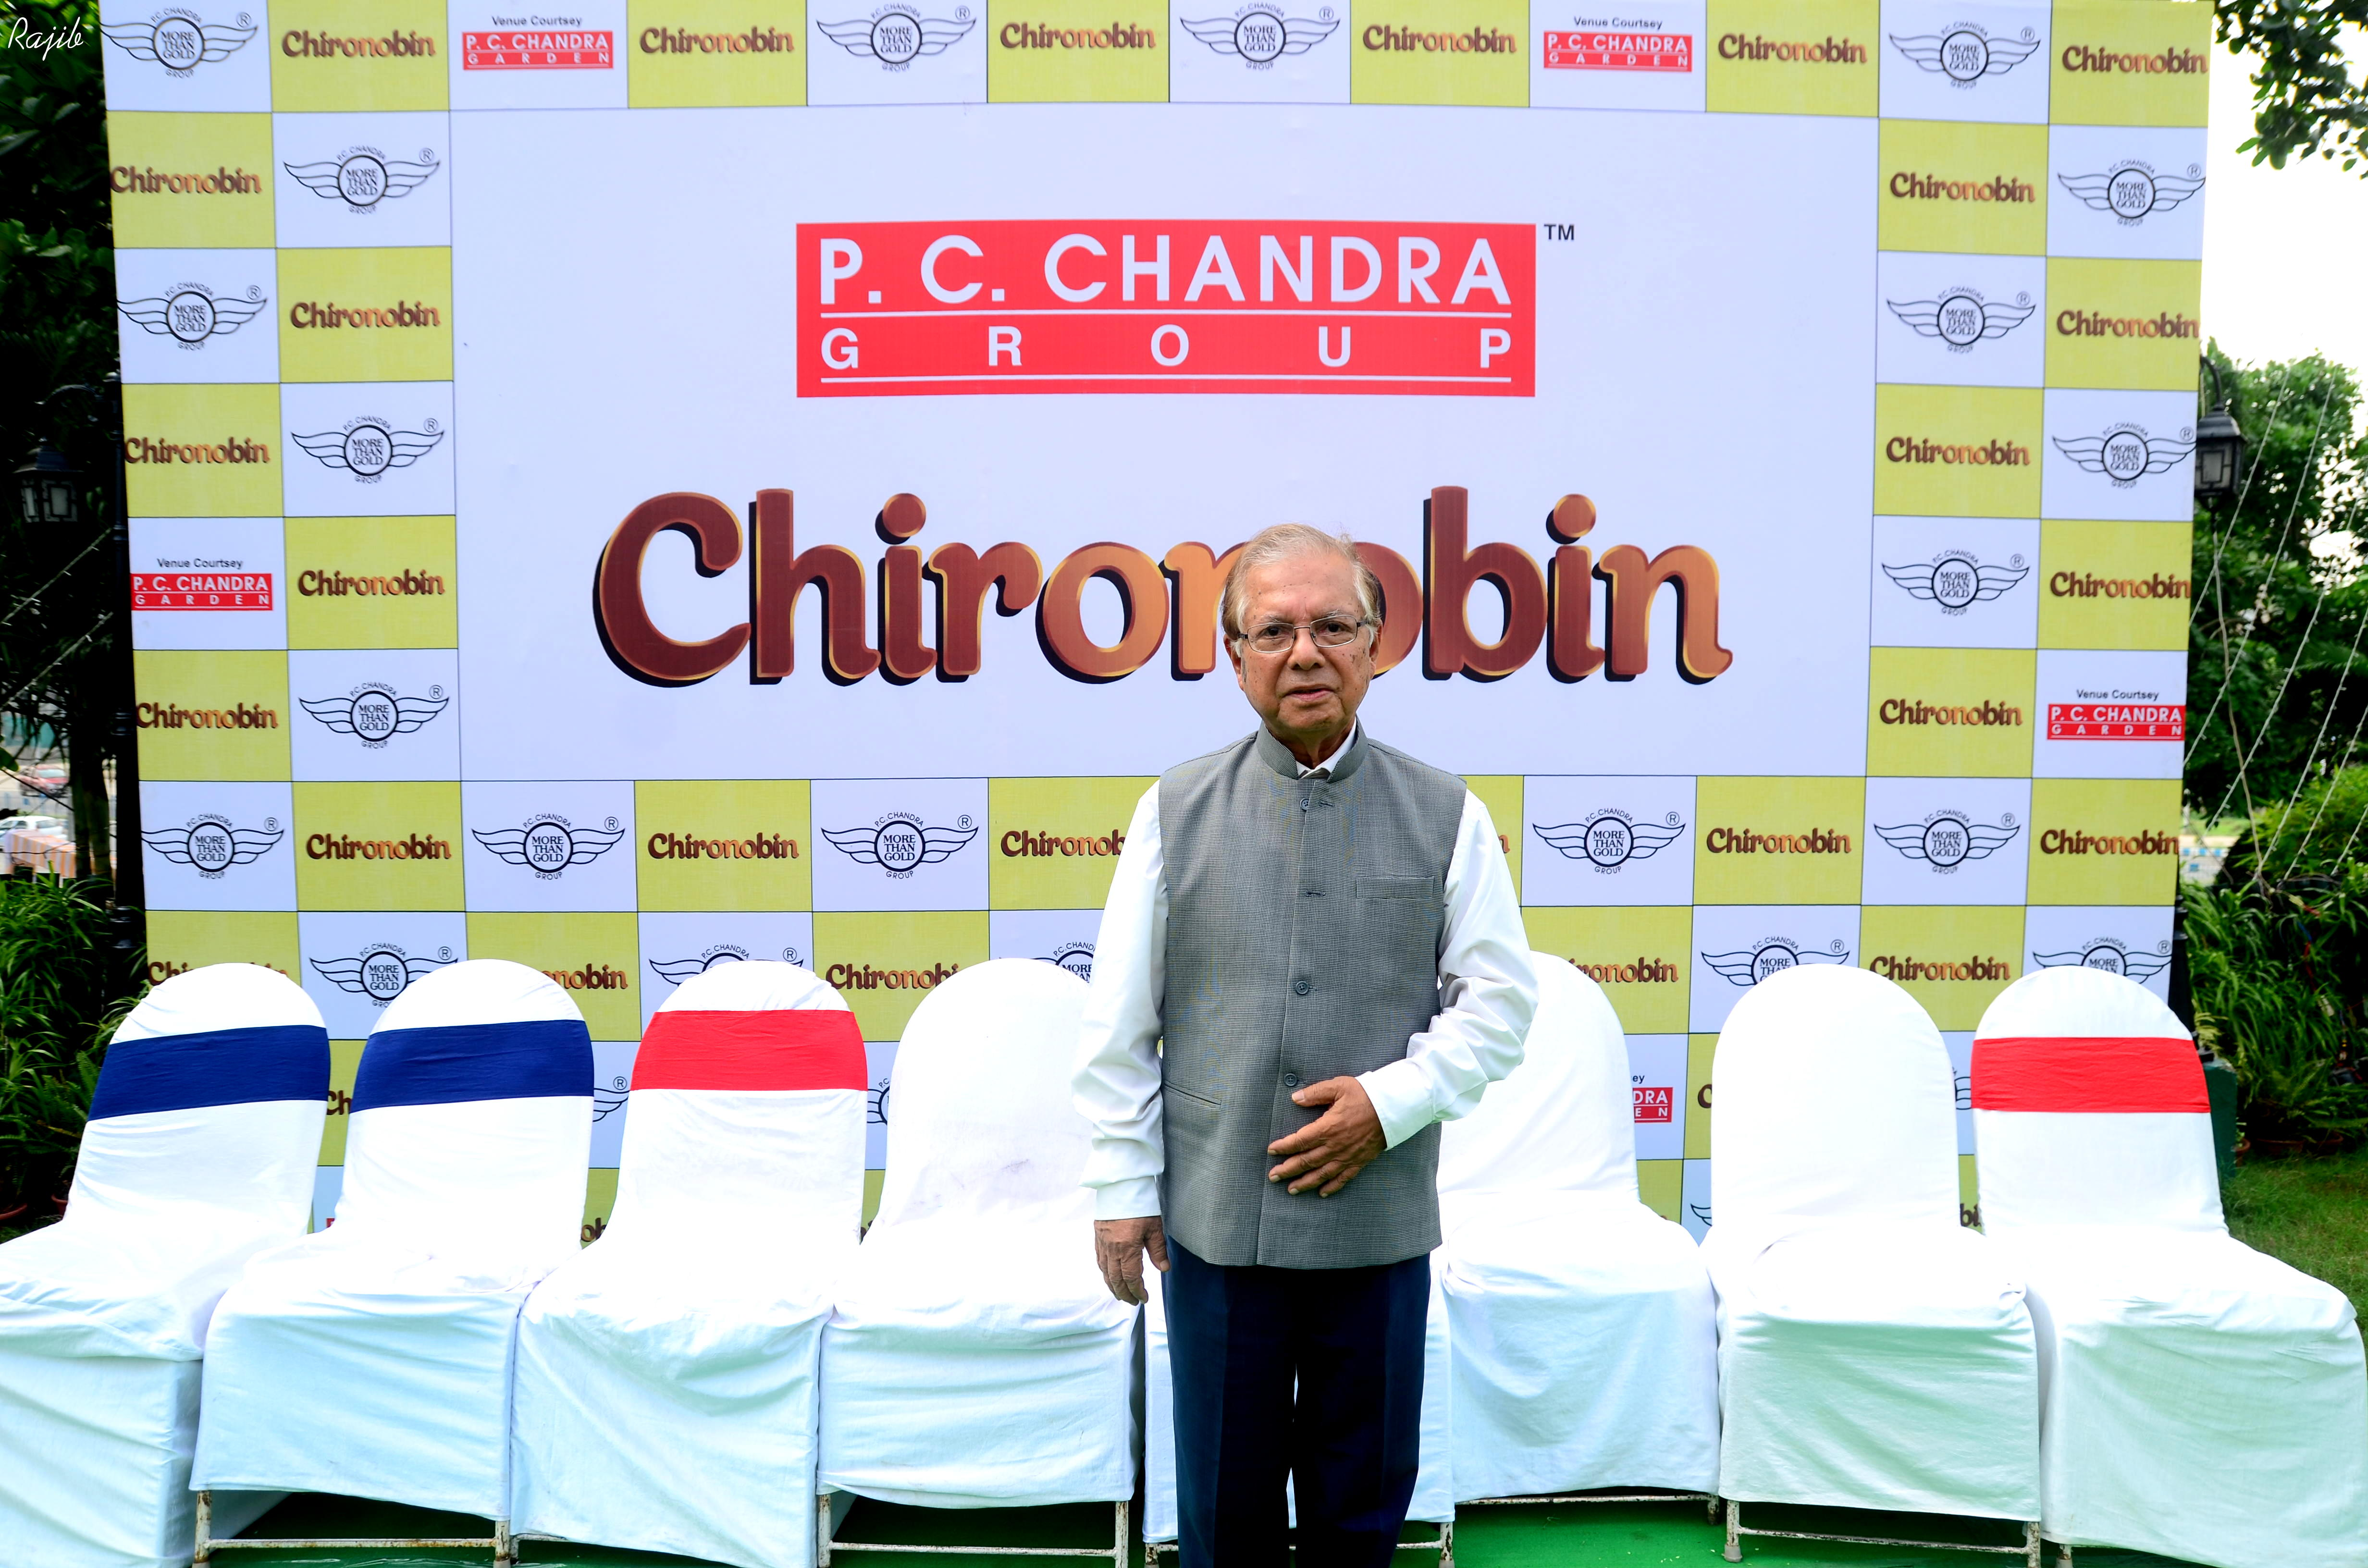 P.C. CHANDRA Chironobin Photo Rajib Mukherjee